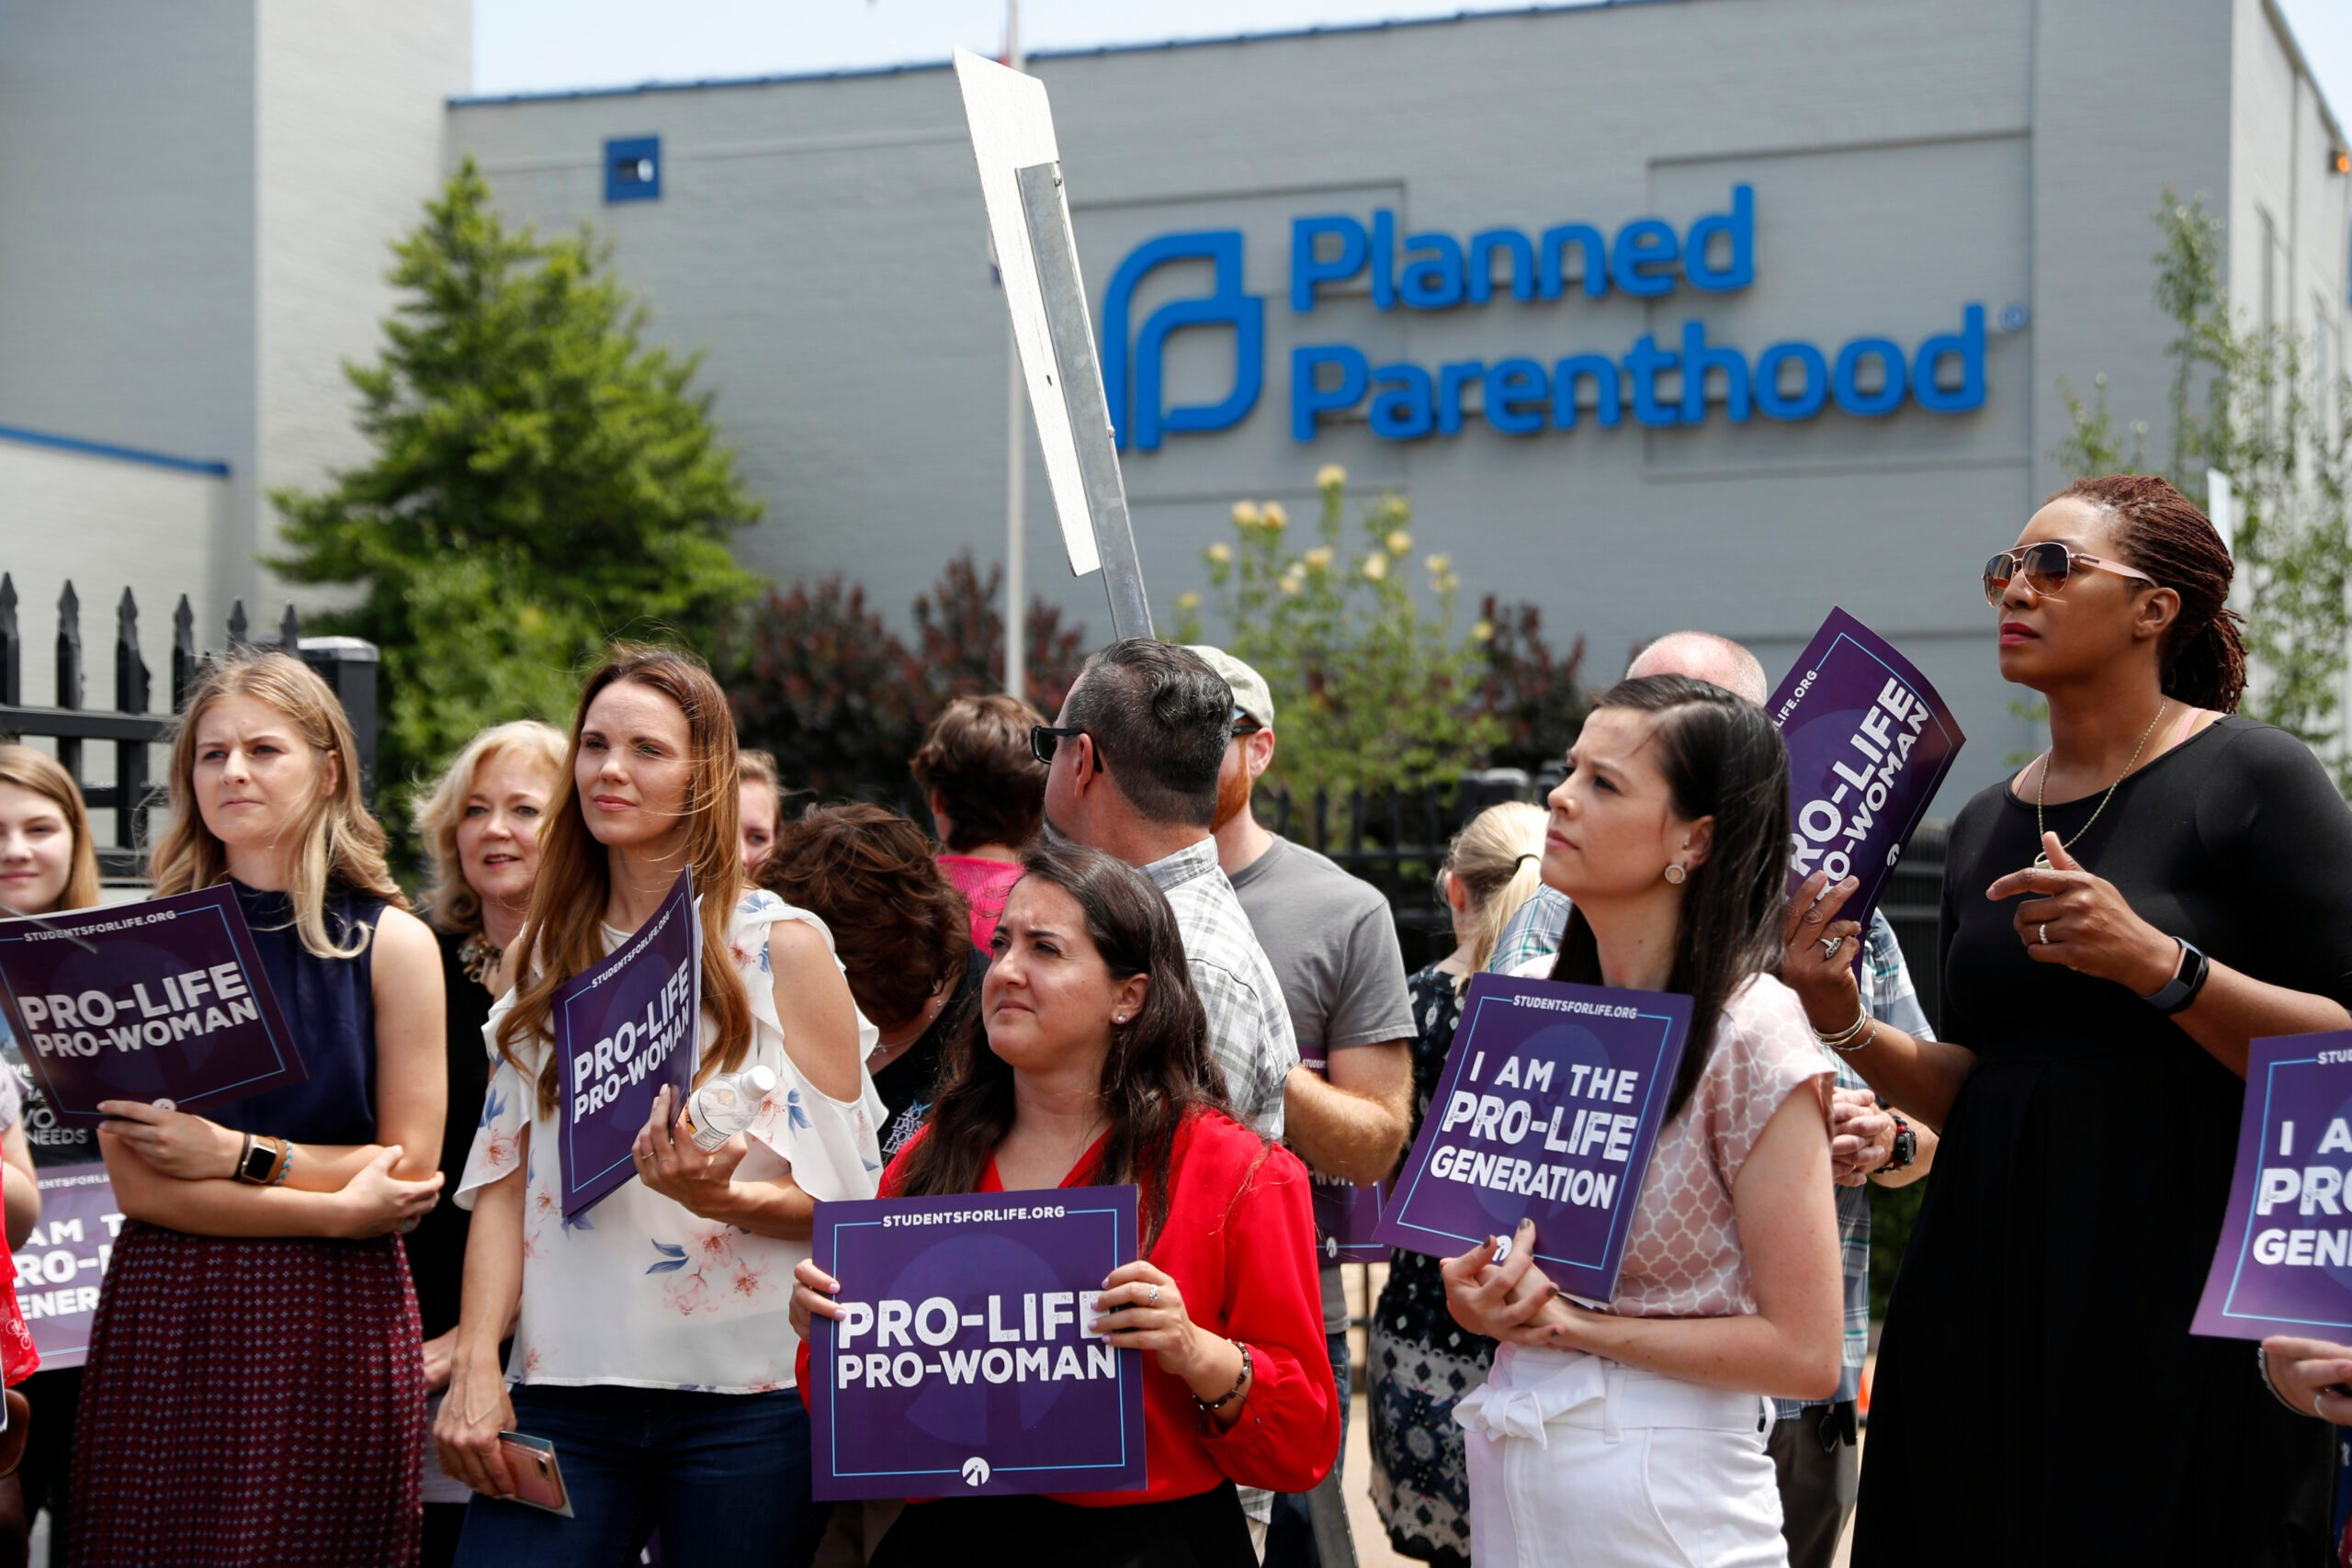 Texas Doctor Who Defied State's Near-Total Abortion Ban Is Sued